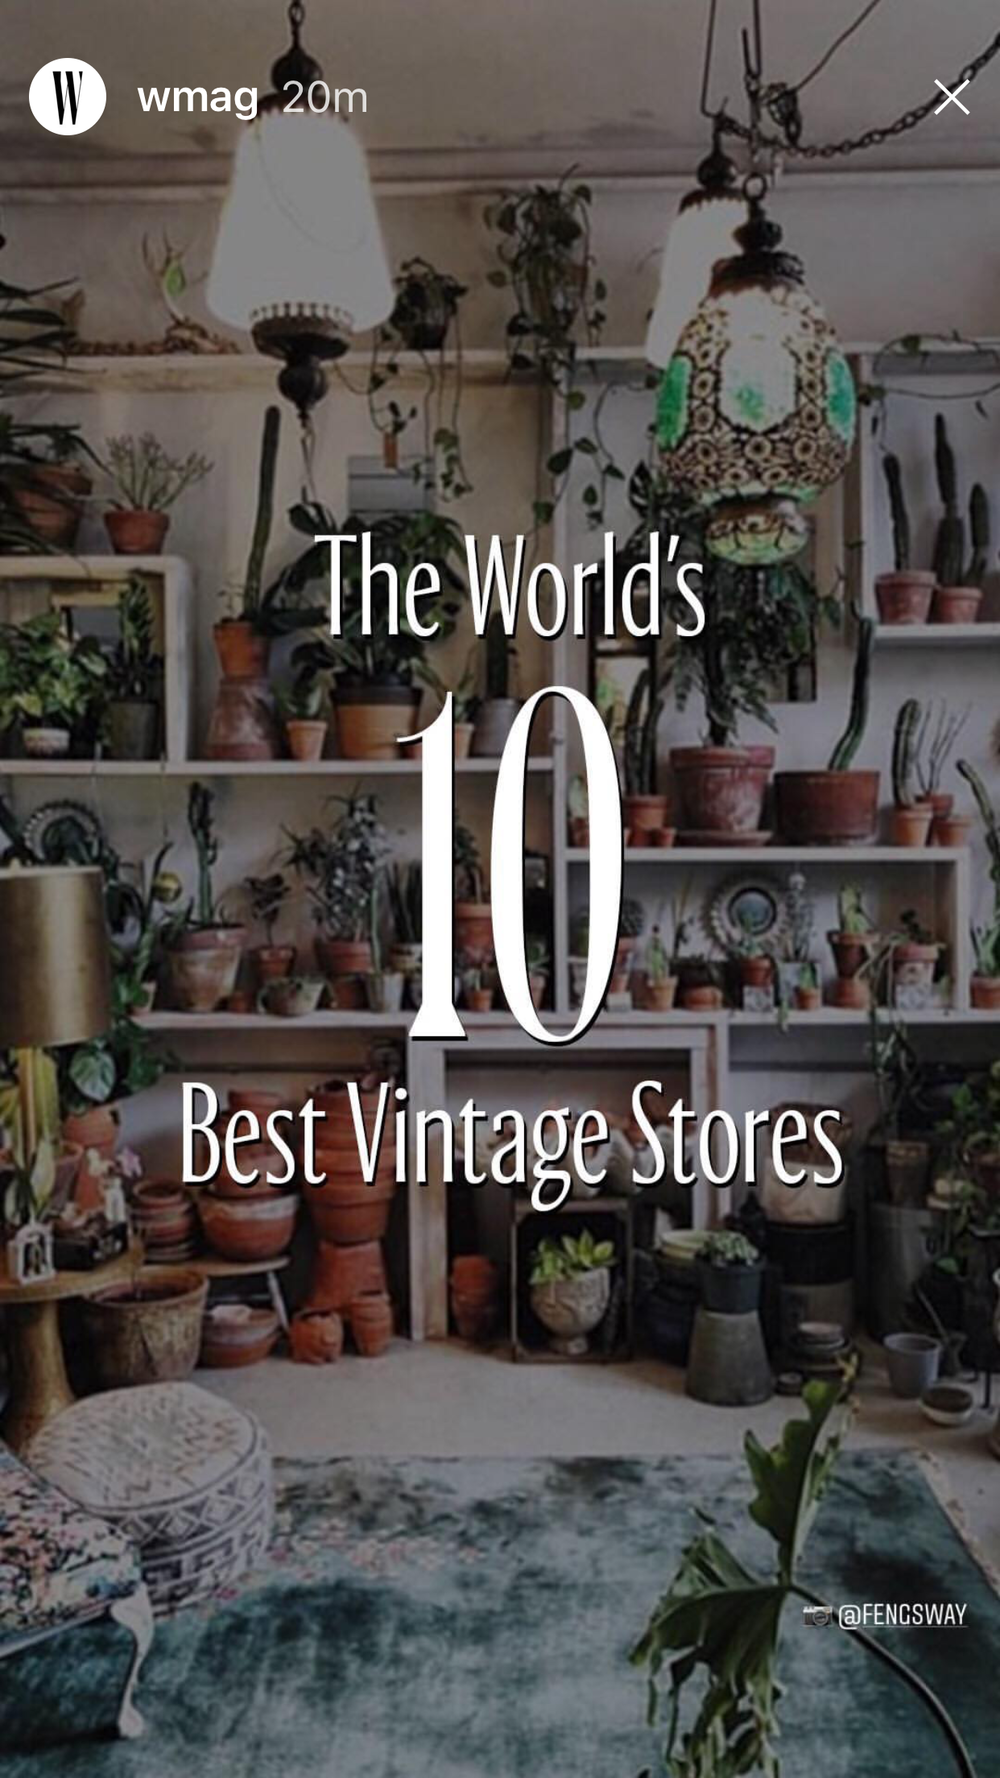 # 1 VINTAGE SHOP IN THE WORLD  W MAGAZINE ~ APRIL 2018